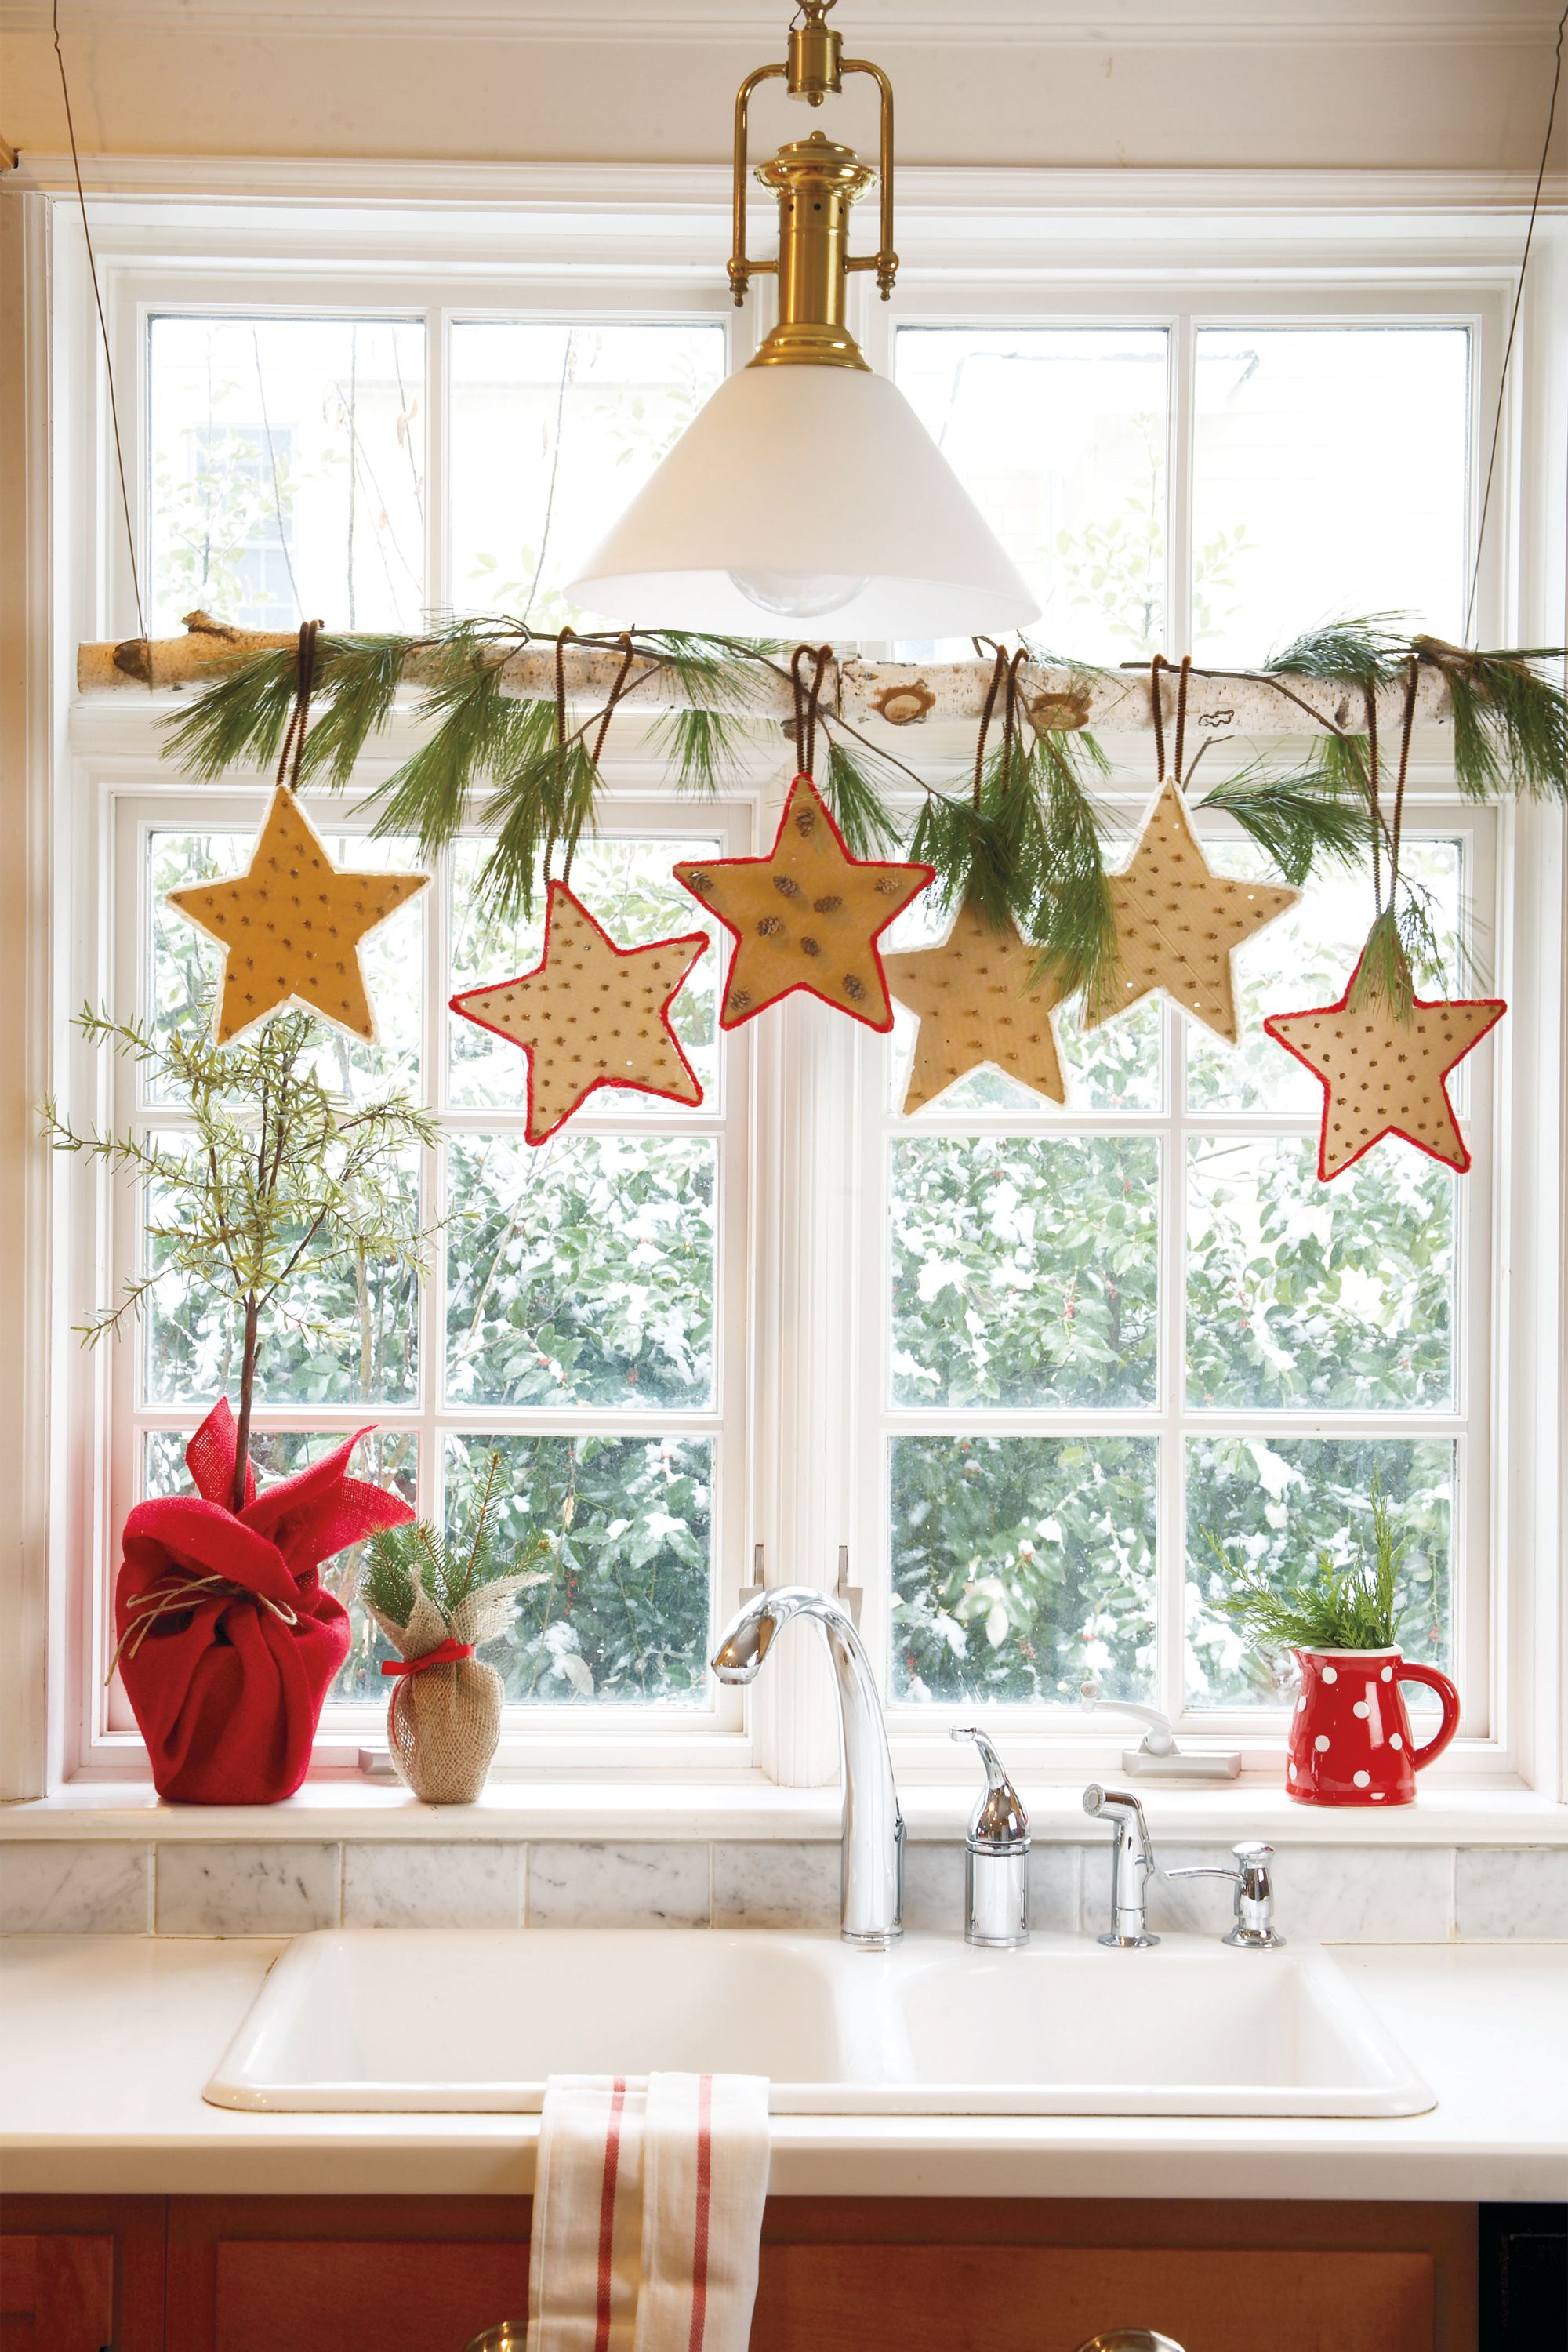 55 Easy DIY Christmas Decorations - Homemade Ideas for Holiday